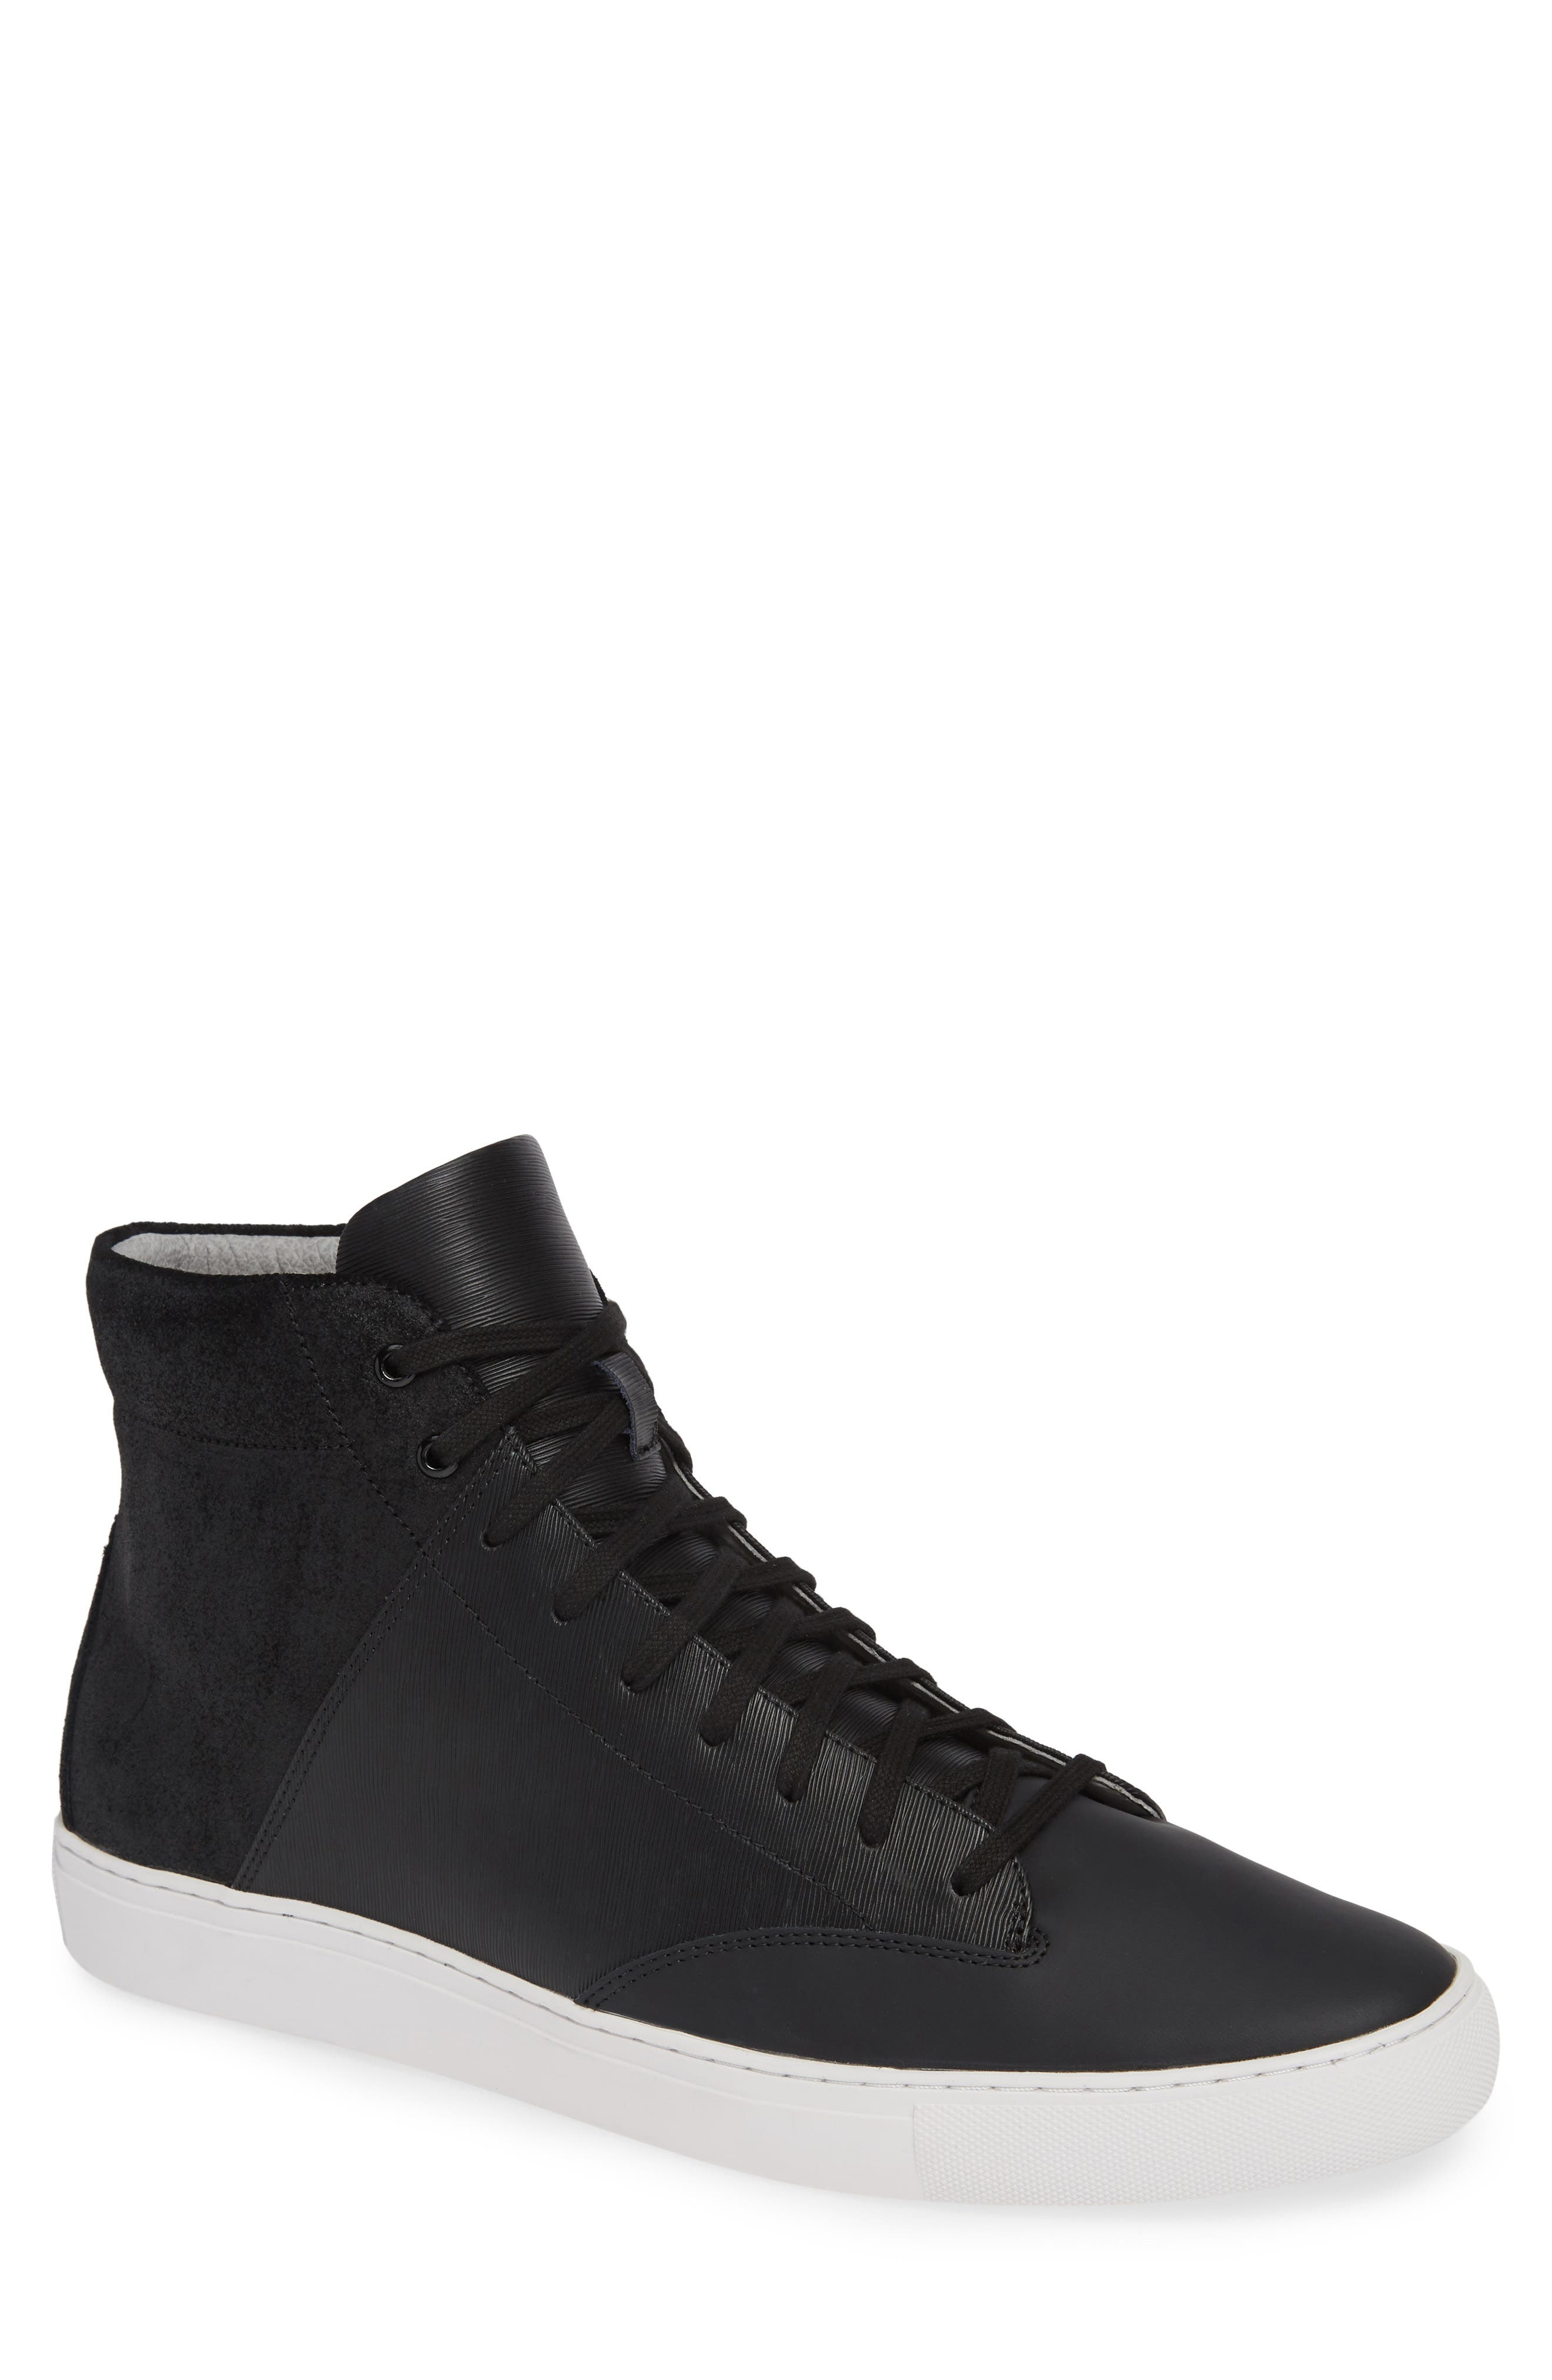 'Porter' High Top Sneaker,                         Main,                         color, BLACK SUEDE/ LEATHER